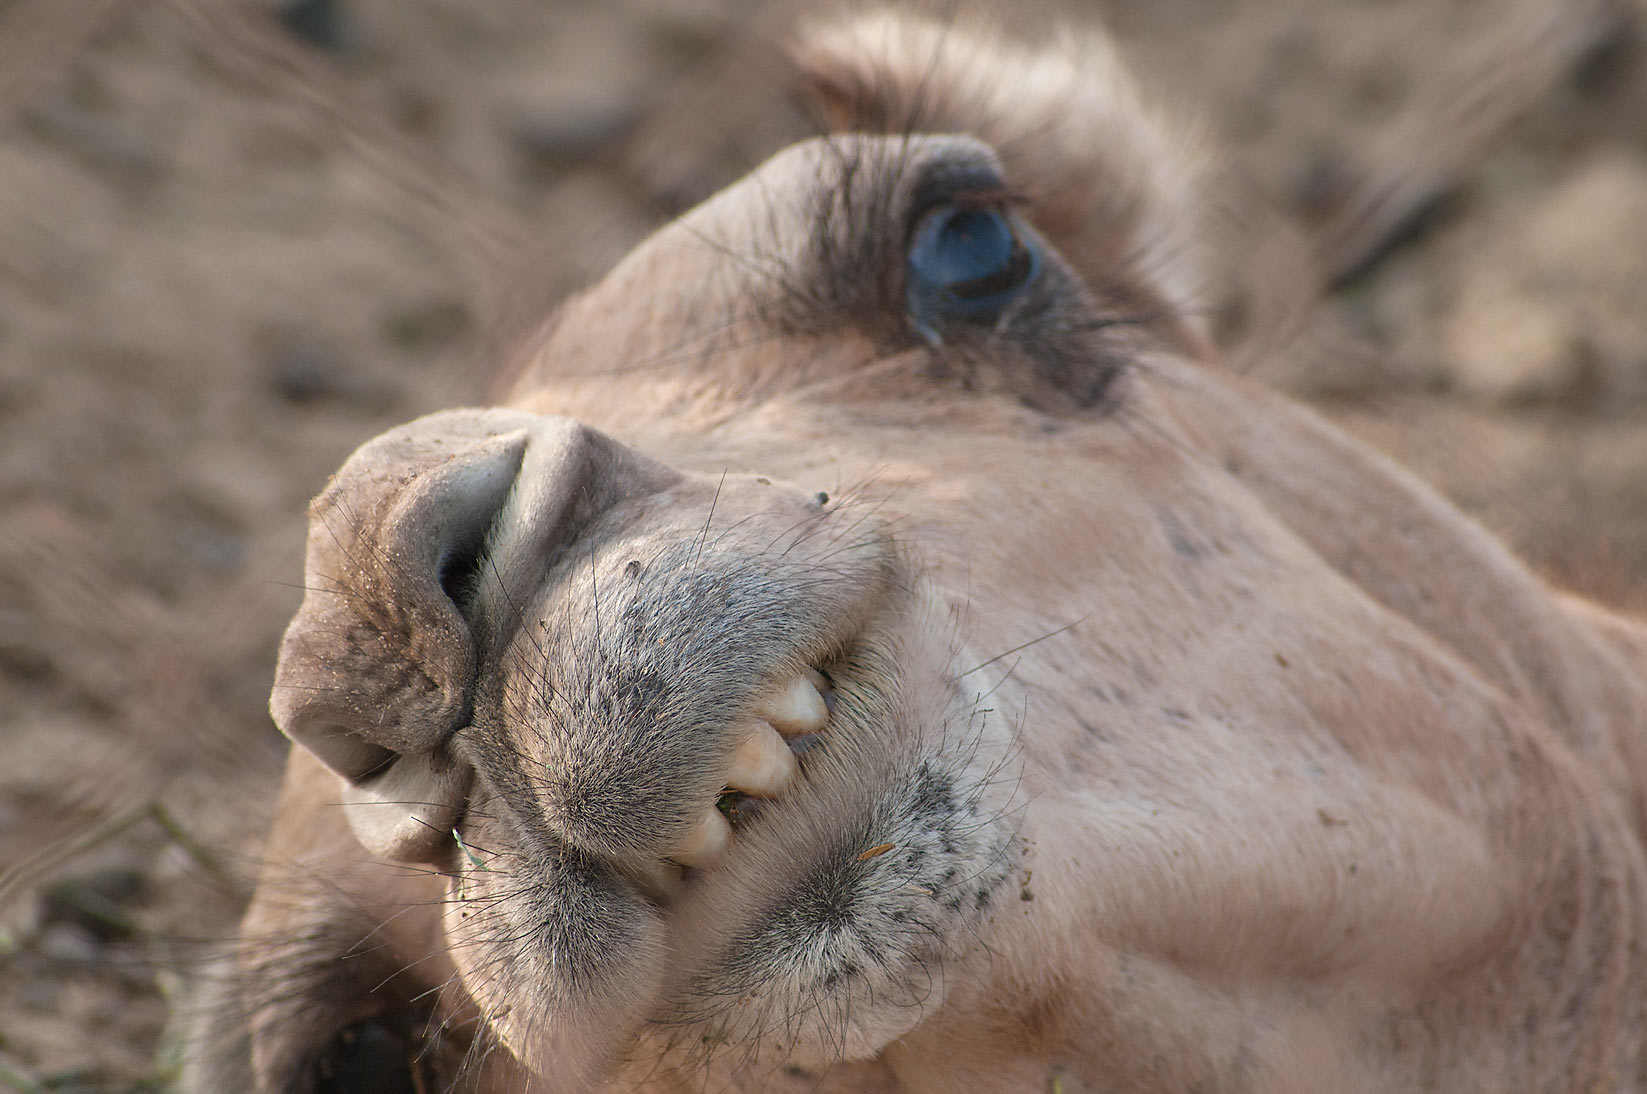 Awakening camel in Camel Market, Wholesale Markets area. Doha, Qatar